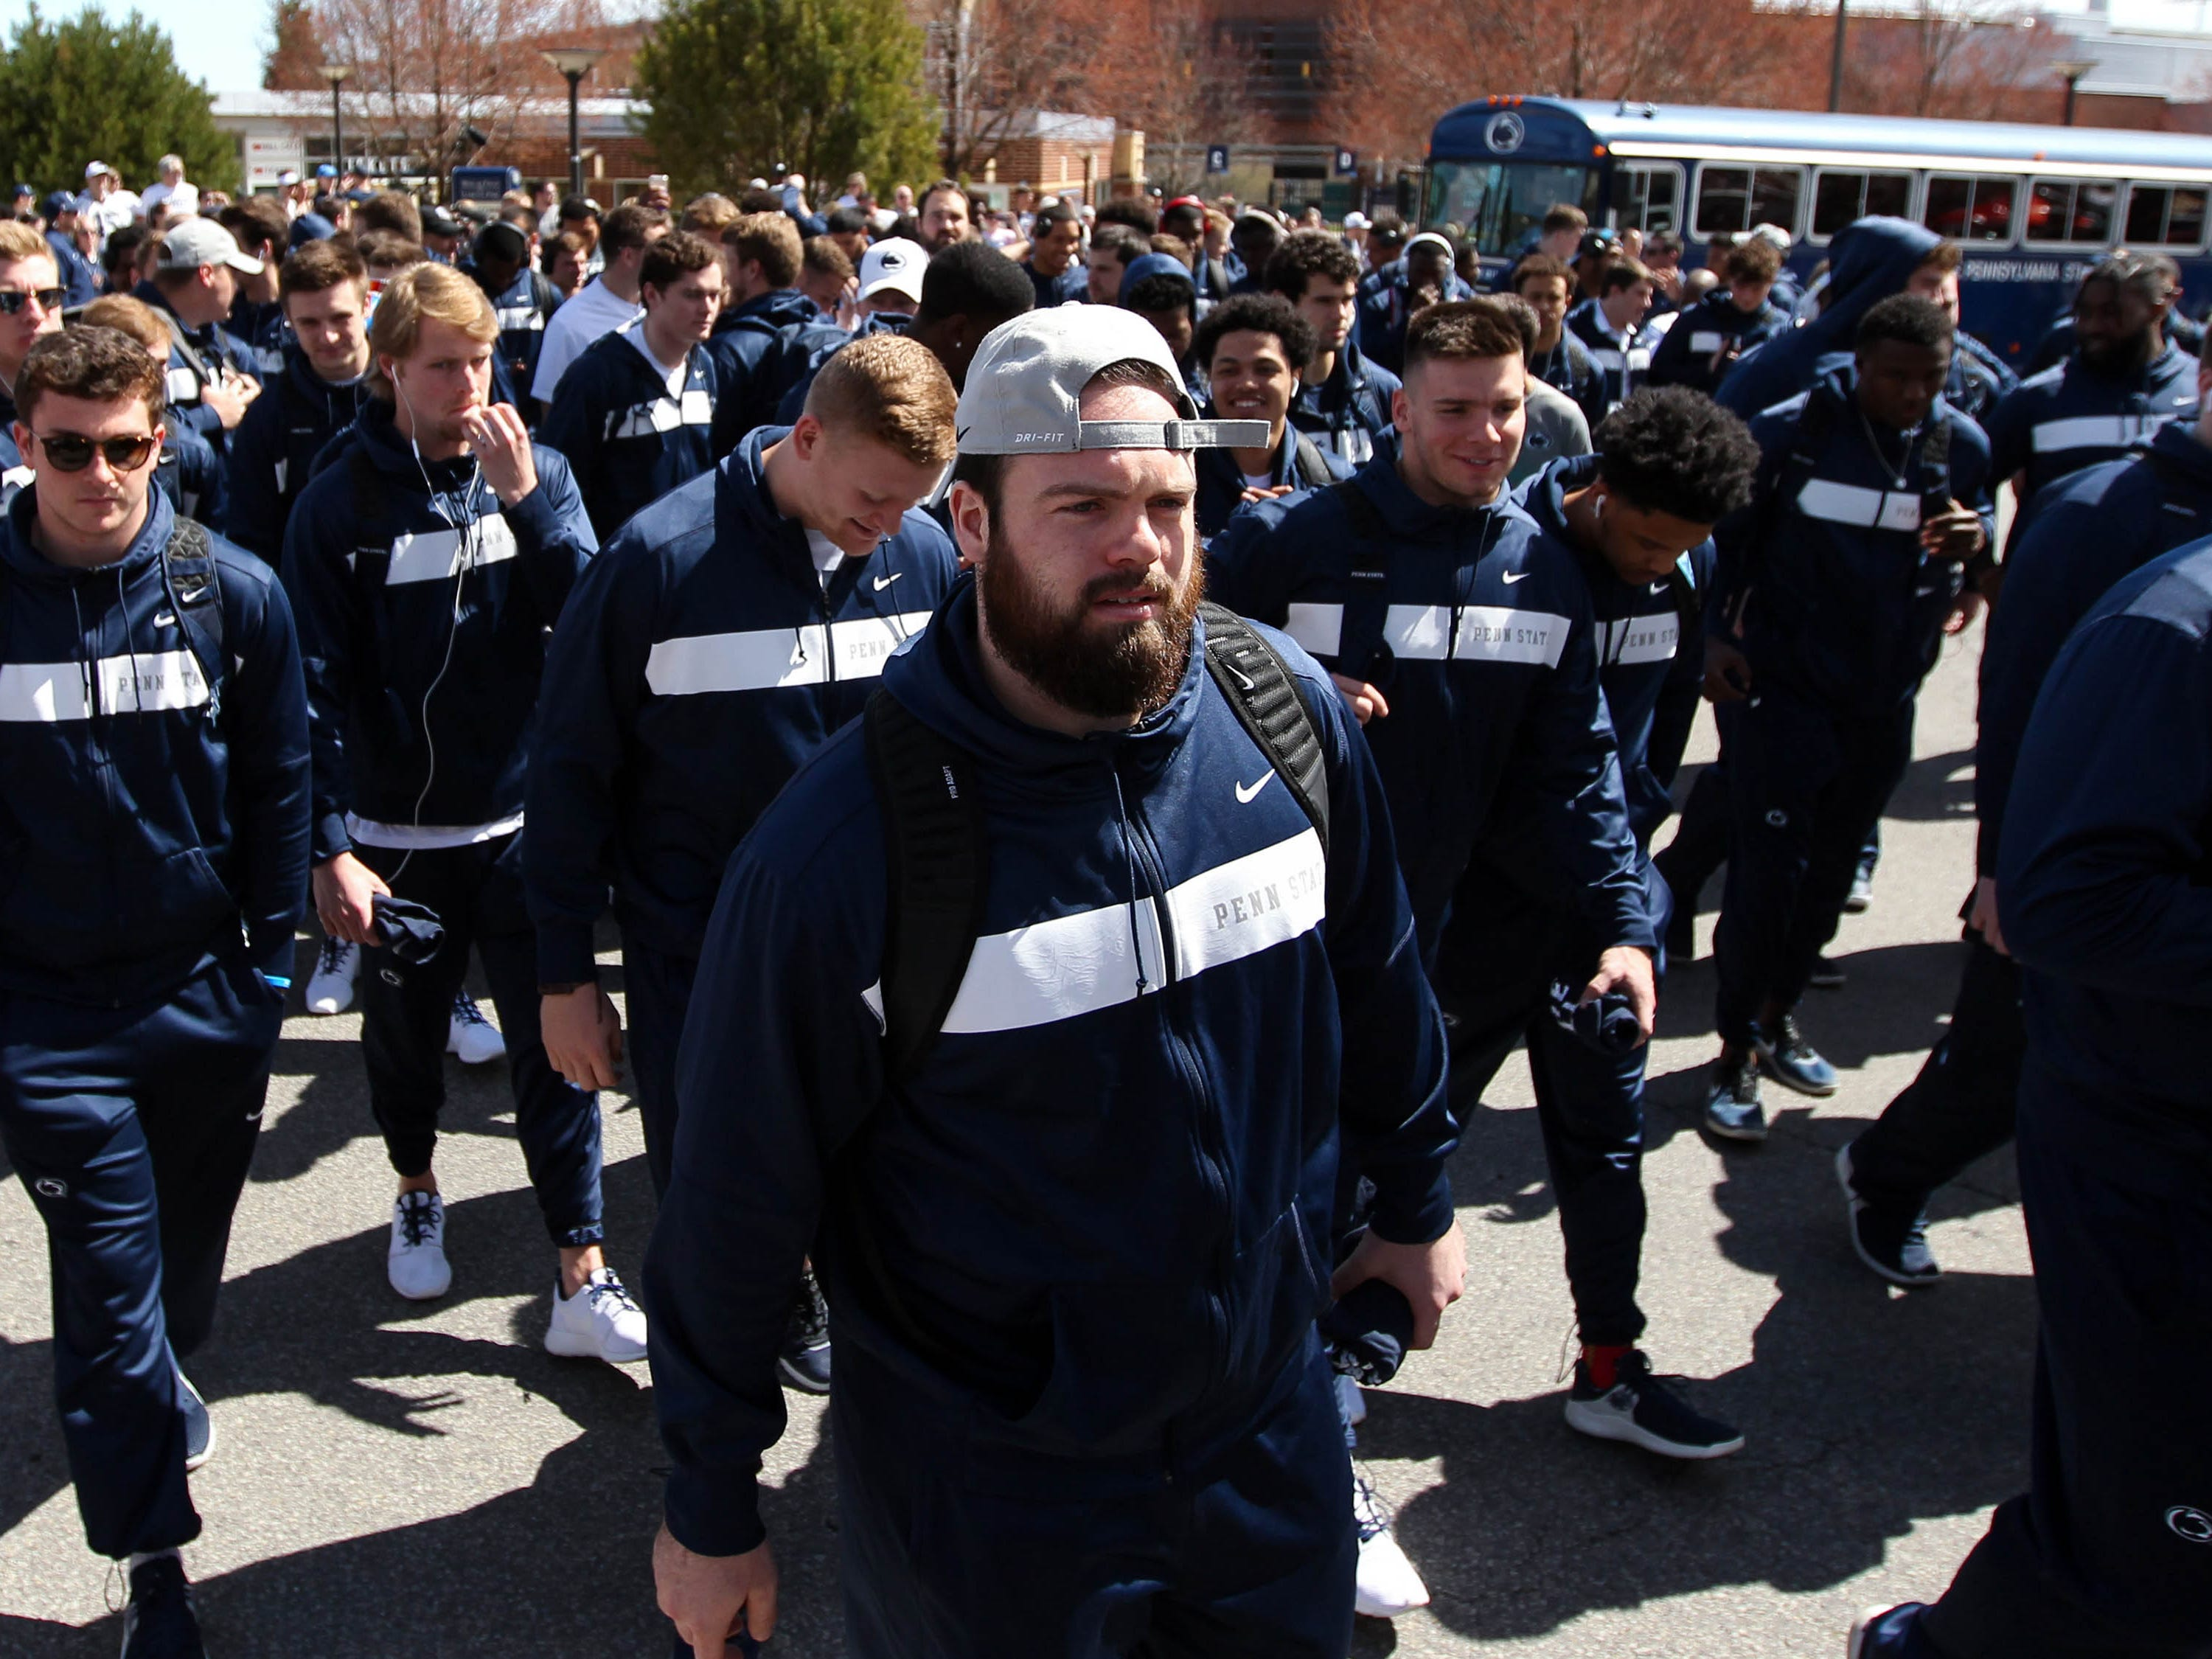 Apr 13, 2019; University Park, PA, USA; Penn State Nittany Lion players exit the team bus prior to the Blue White spring game at Beaver Stadium. Mandatory Credit: Matthew O'Haren-USA TODAY Sports